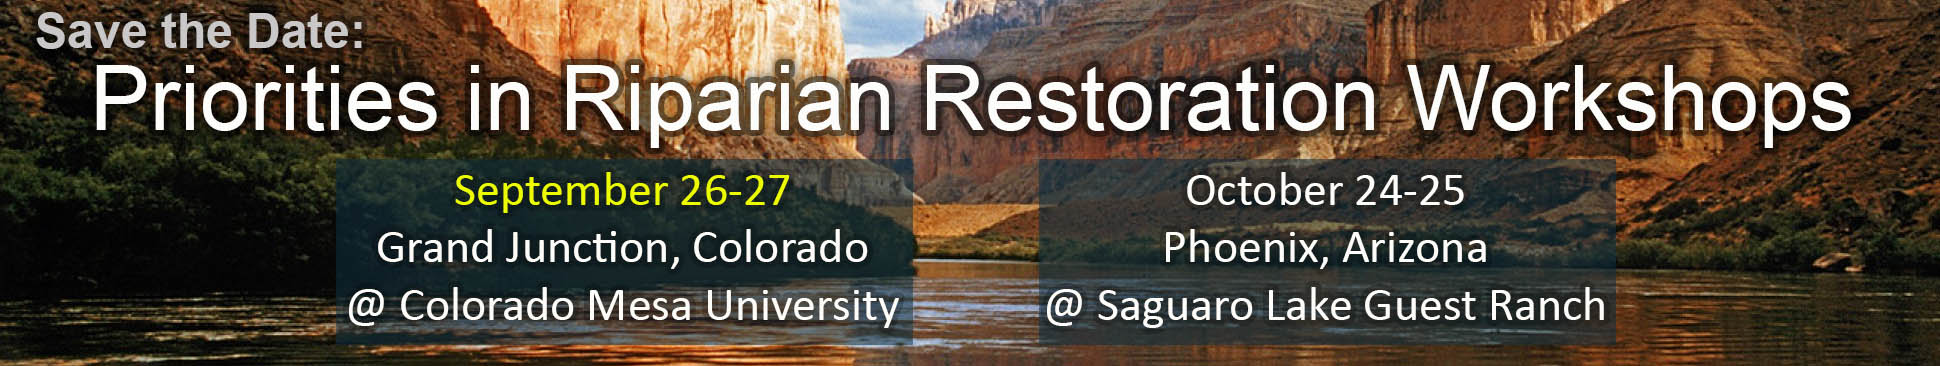 Save the Date for Restoration Decisions Workshop